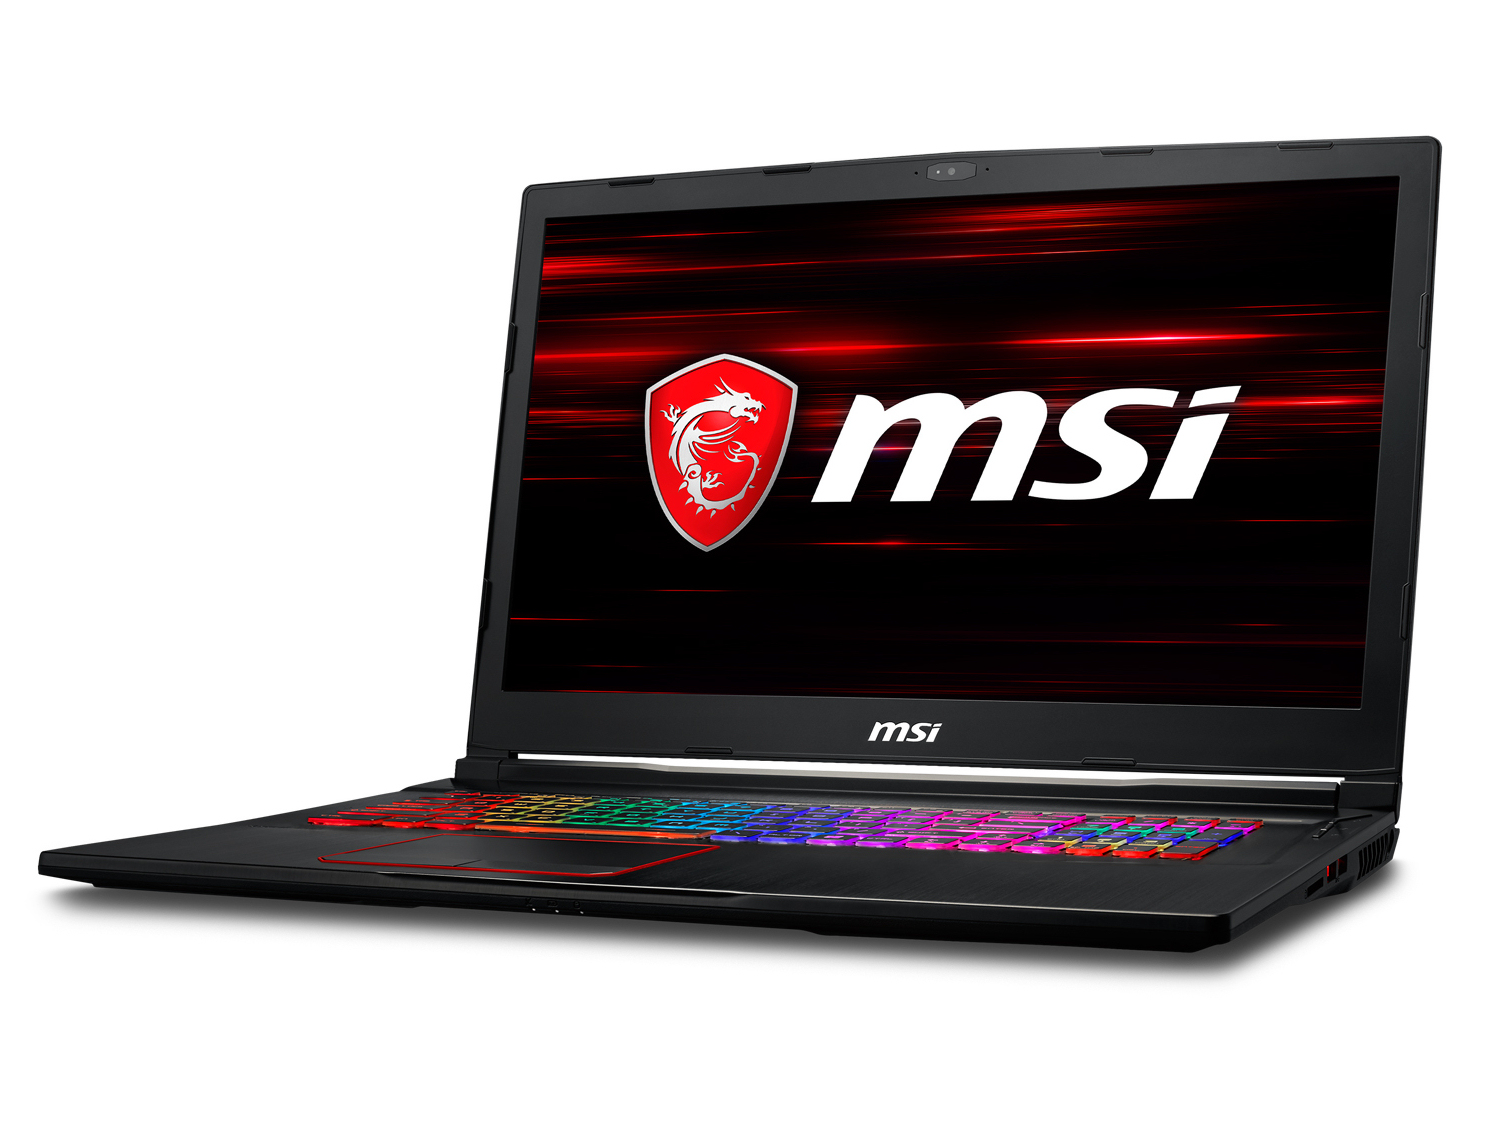 MSI GE73 8RF-008 Raider RGB - Notebookcheck net External Reviews